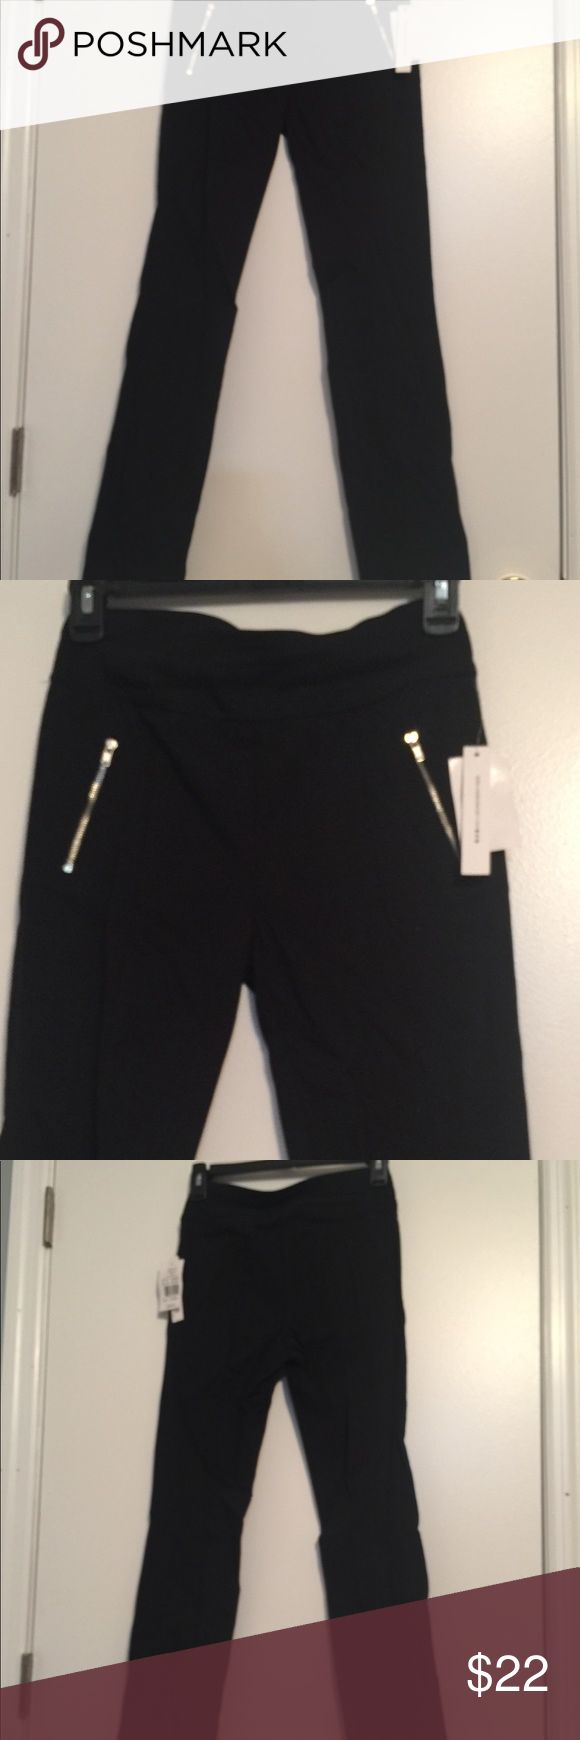 Joe B by joe benbasset Black Stretch Legging . These have faux zipper pockets on front . Pull on style with stretch . 78% Rayon, 20% nylon, 4% spandex. . 21/2 Waist Band . Waist measures 13 inches. Mid- rise 9 inches. Inseam is 28 inches . Small split in back of leg at bottom is 21/2 inches. These have a lot of stretch . J B by joe benbasset Pants Ankle & Cropped